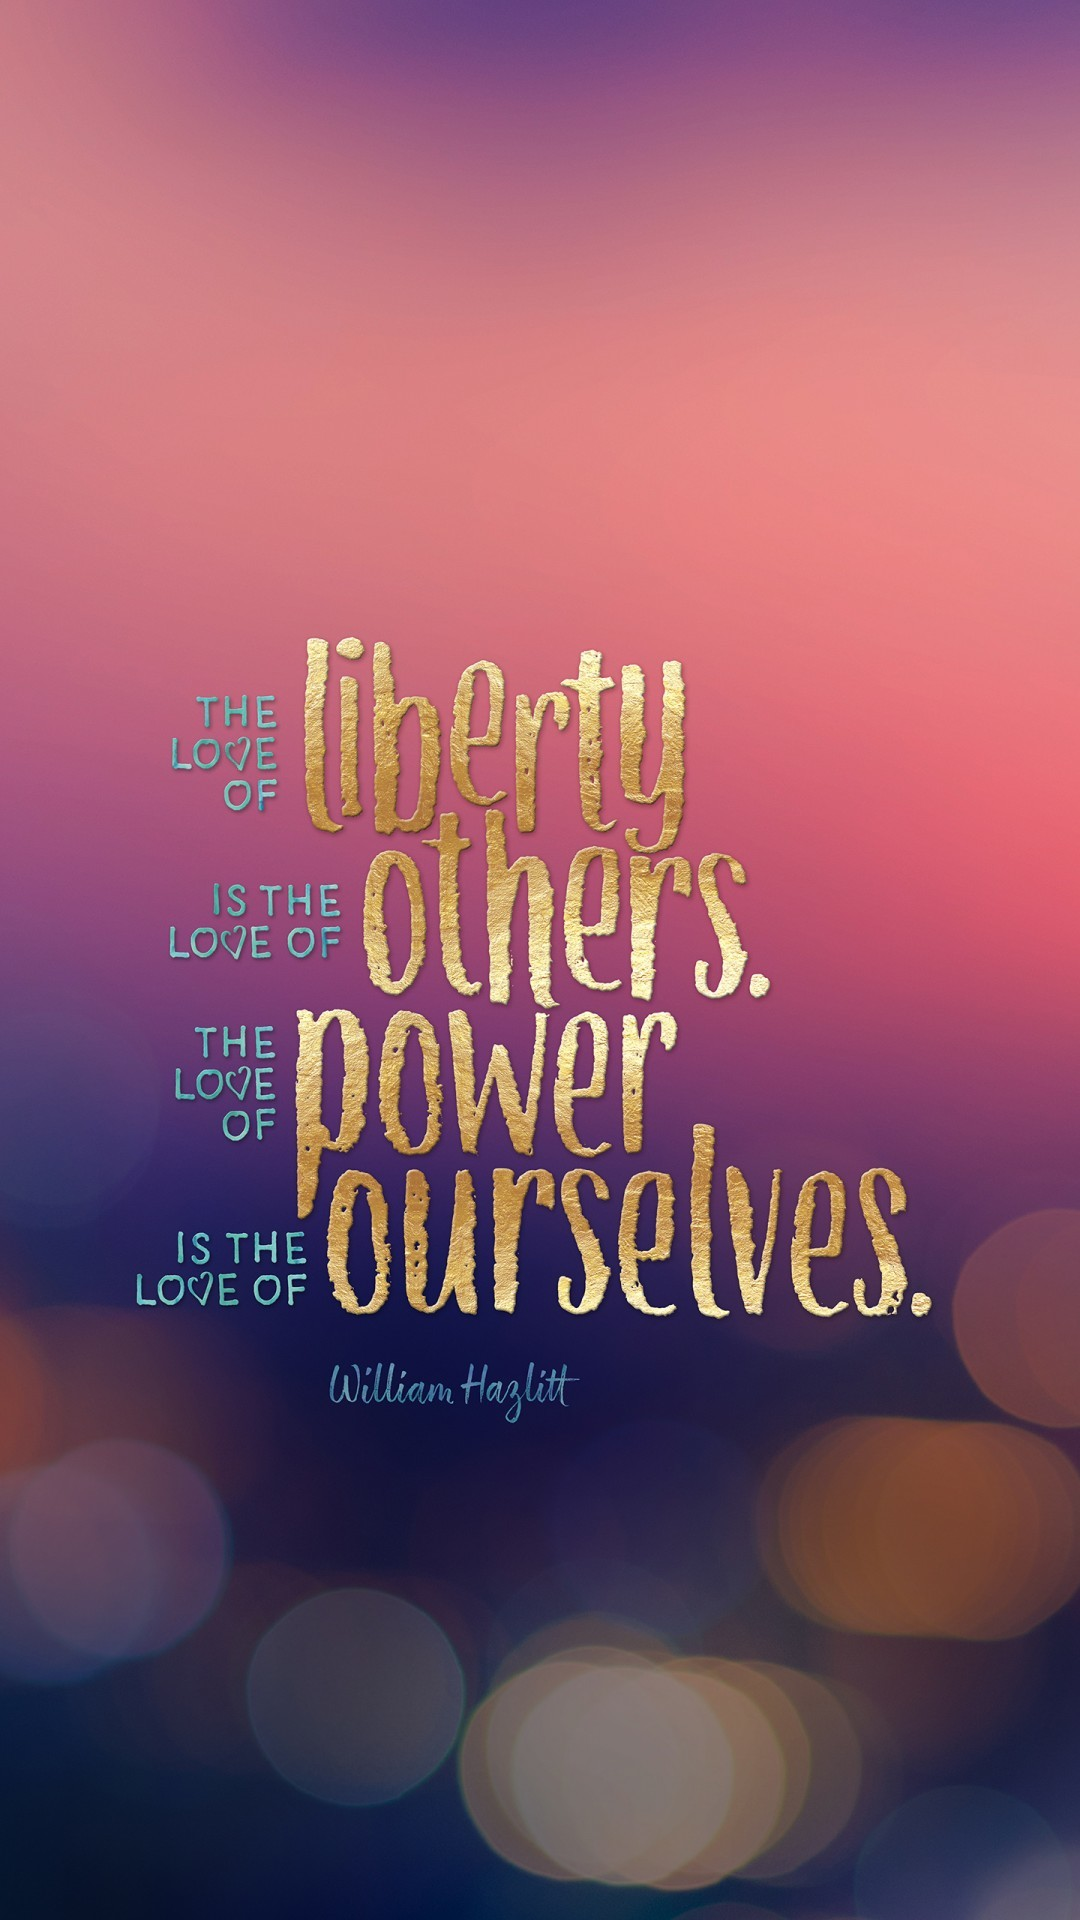 Free Love Liberty Power Popular quote phone wallpaper by peawilly